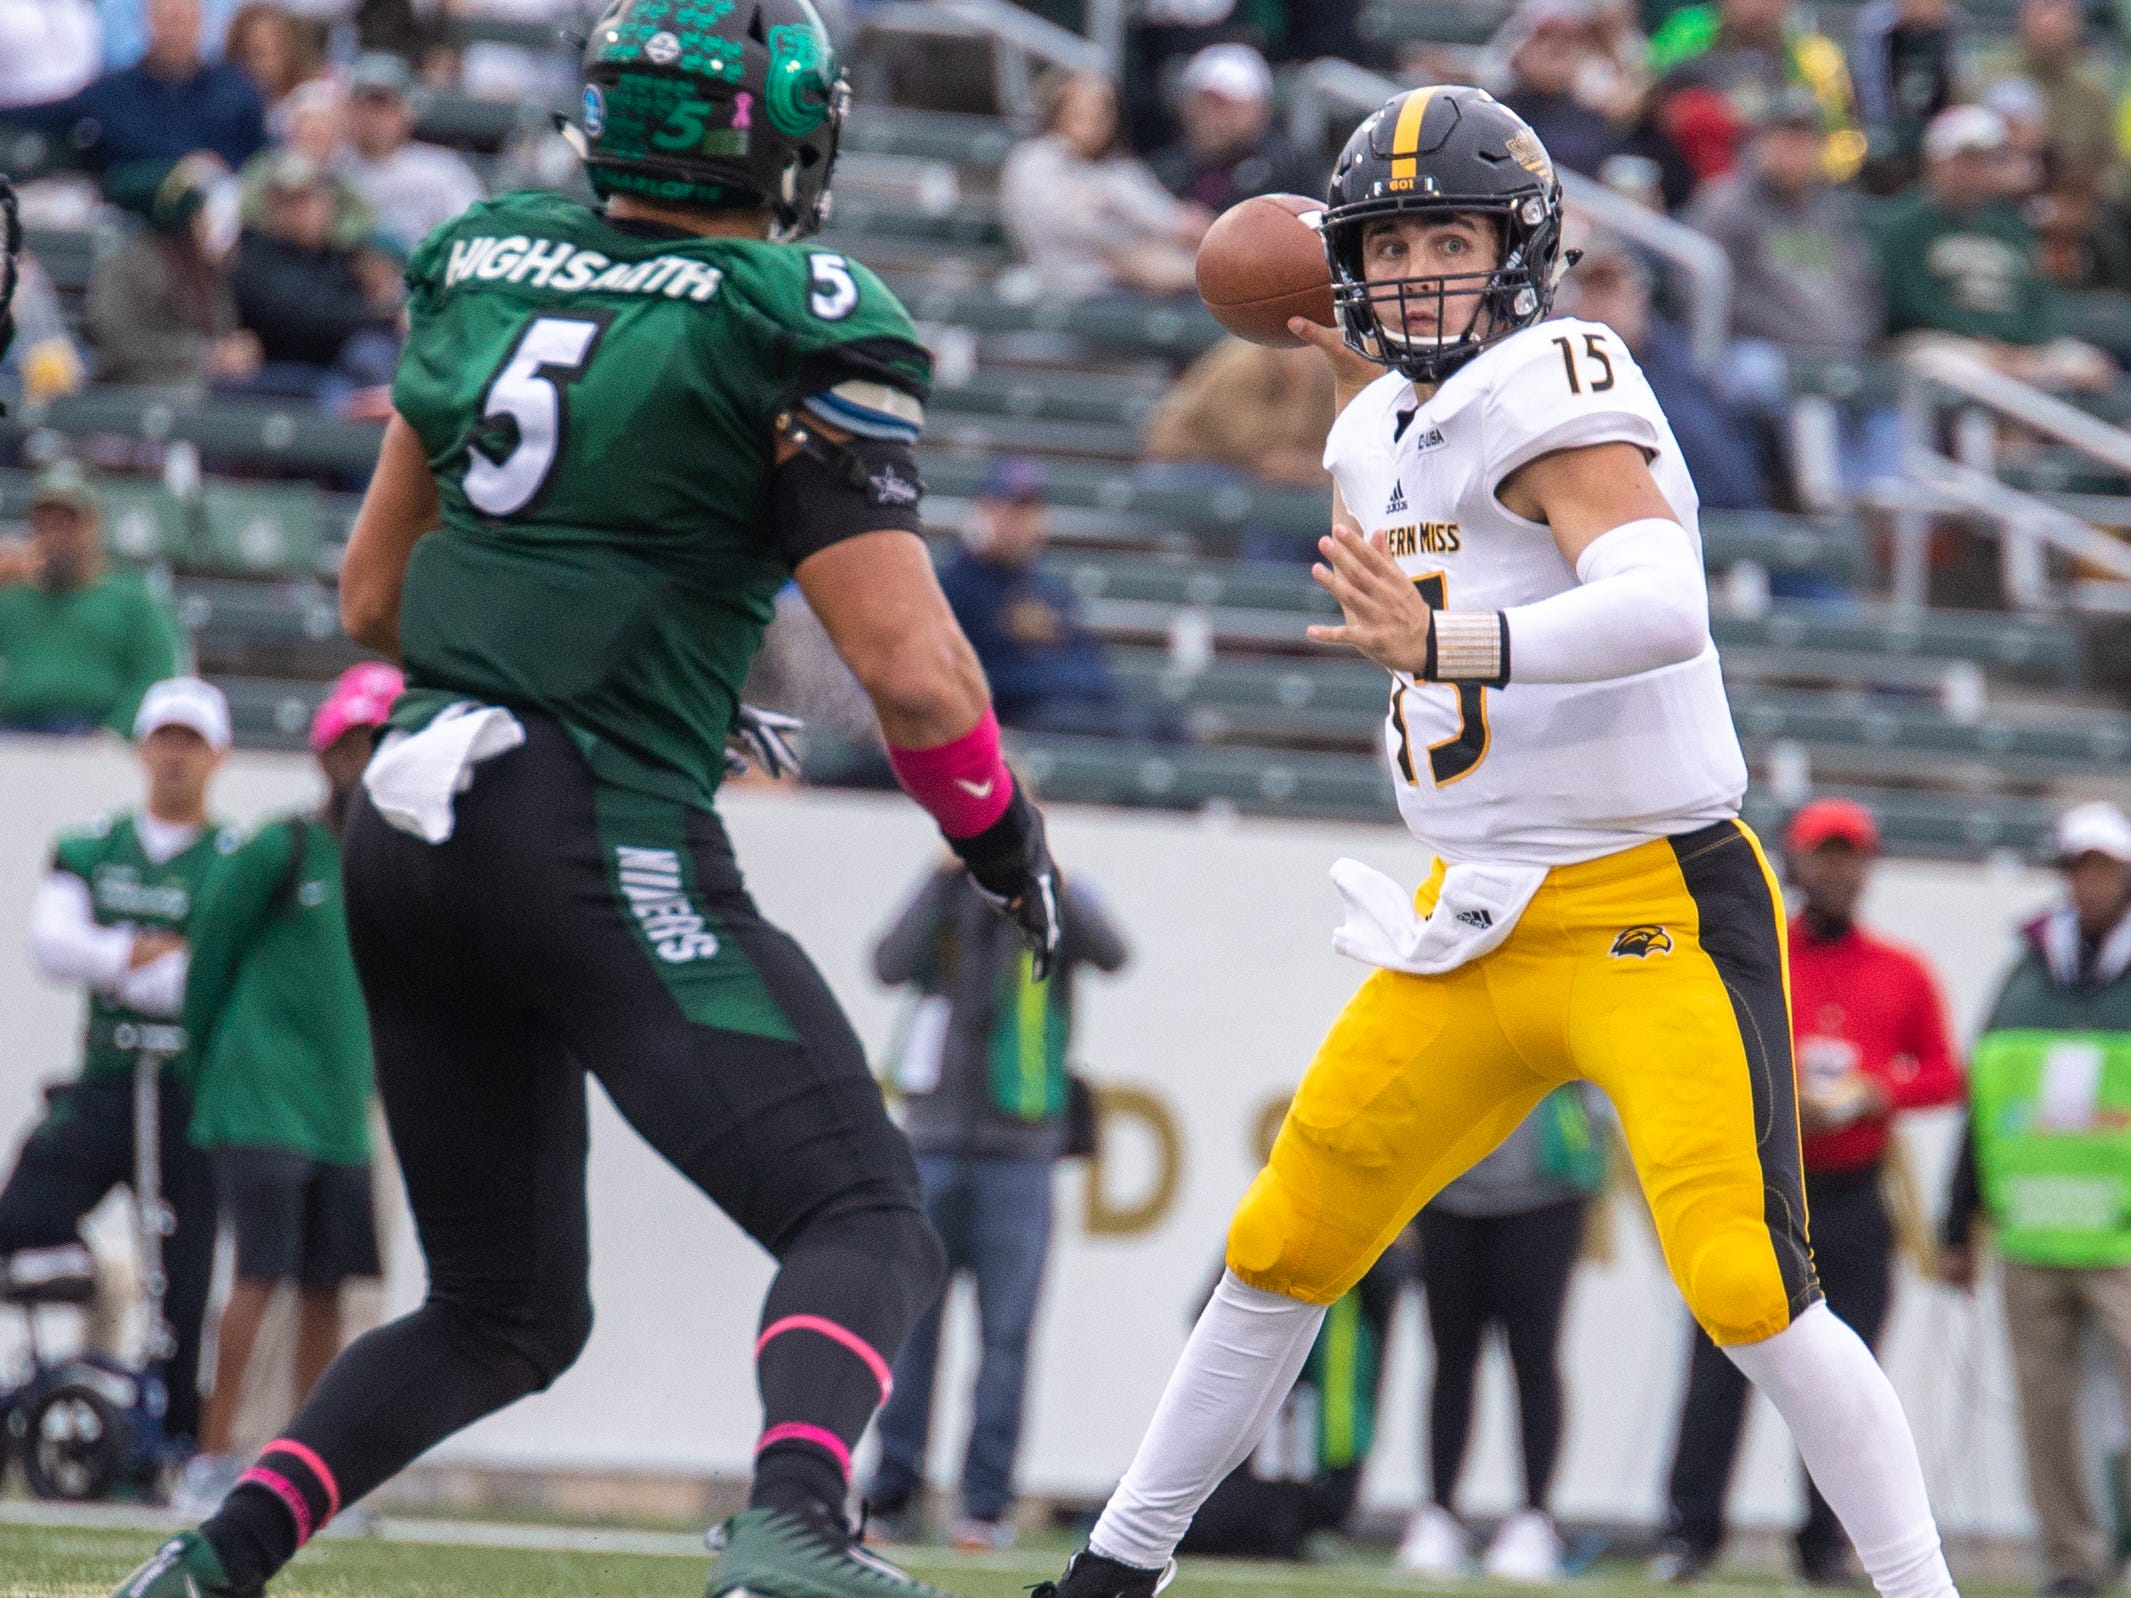 Southern Miss quarterback Jack Abraham (15) prepares to throw a pass as Charlotte defensive end Alex Highsmith applies pressure Saturday in Charlotte, N.C.